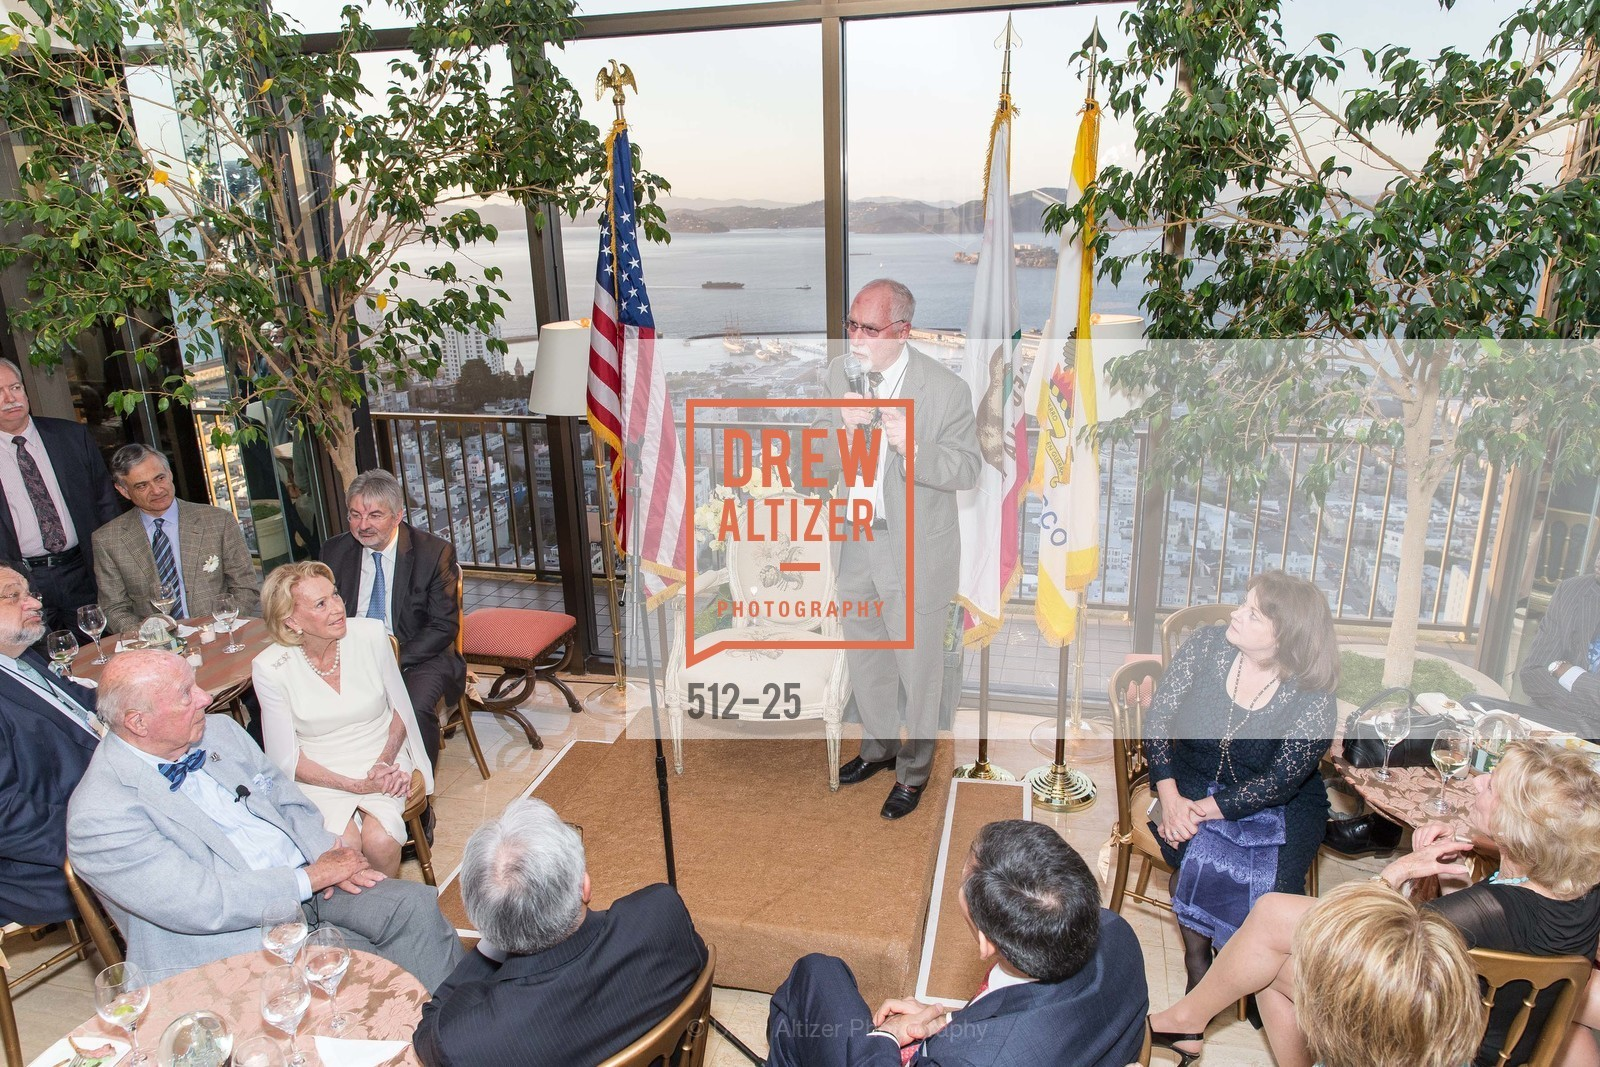 test name, San Francisco City Hall Office of Protocol Hosts Experience America Tour, March 31st, 2015, Photo,Drew Altizer, Drew Altizer Photography, full-service event agency, private events, San Francisco photographer, photographer California